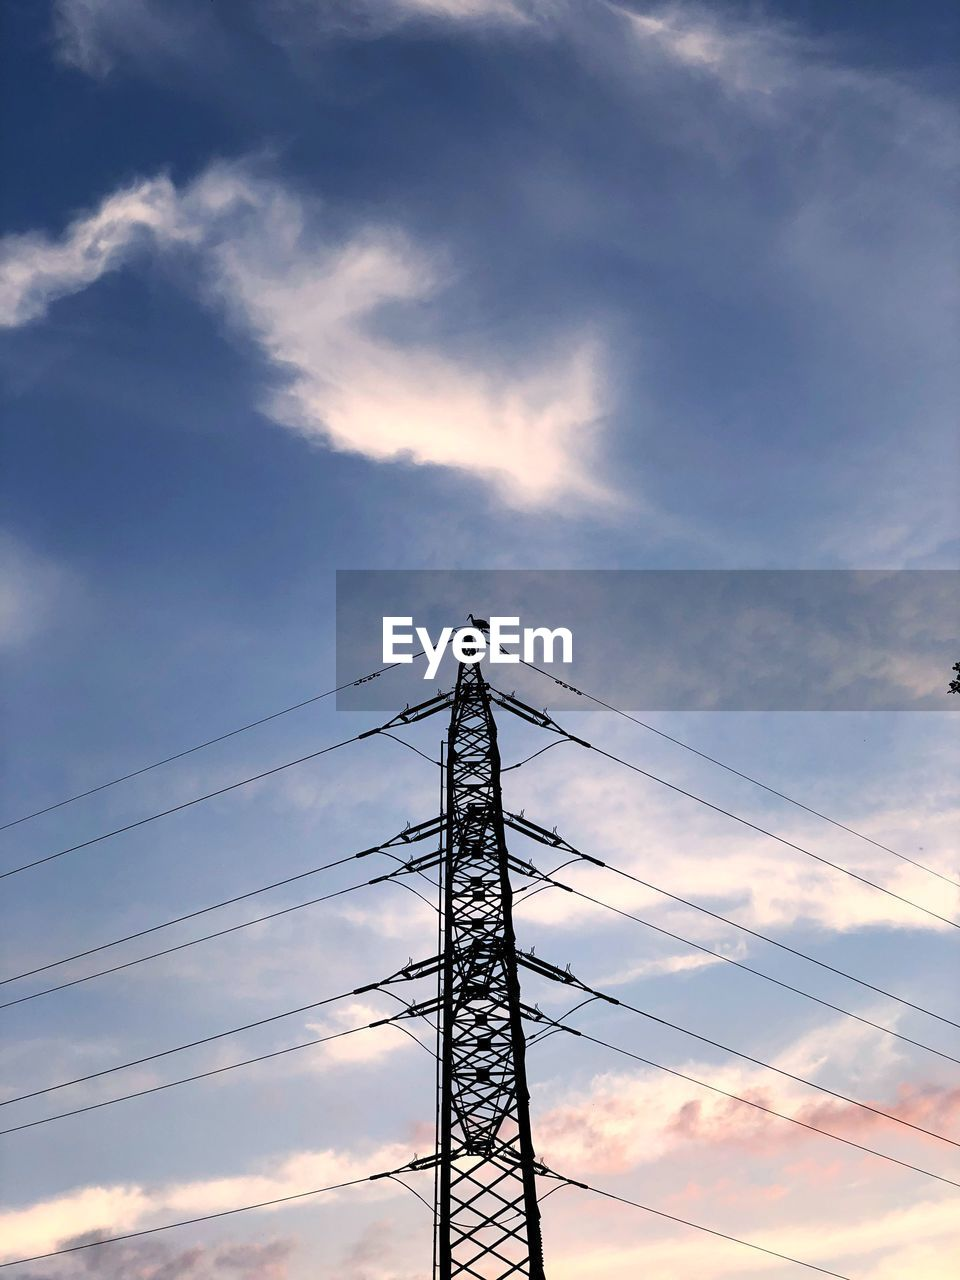 cloud - sky, sky, low angle view, technology, electricity, connection, electricity pylon, cable, power supply, power line, nature, metal, architecture, no people, built structure, fuel and power generation, silhouette, outdoors, sunset, tall - high, global communications, electrical equipment